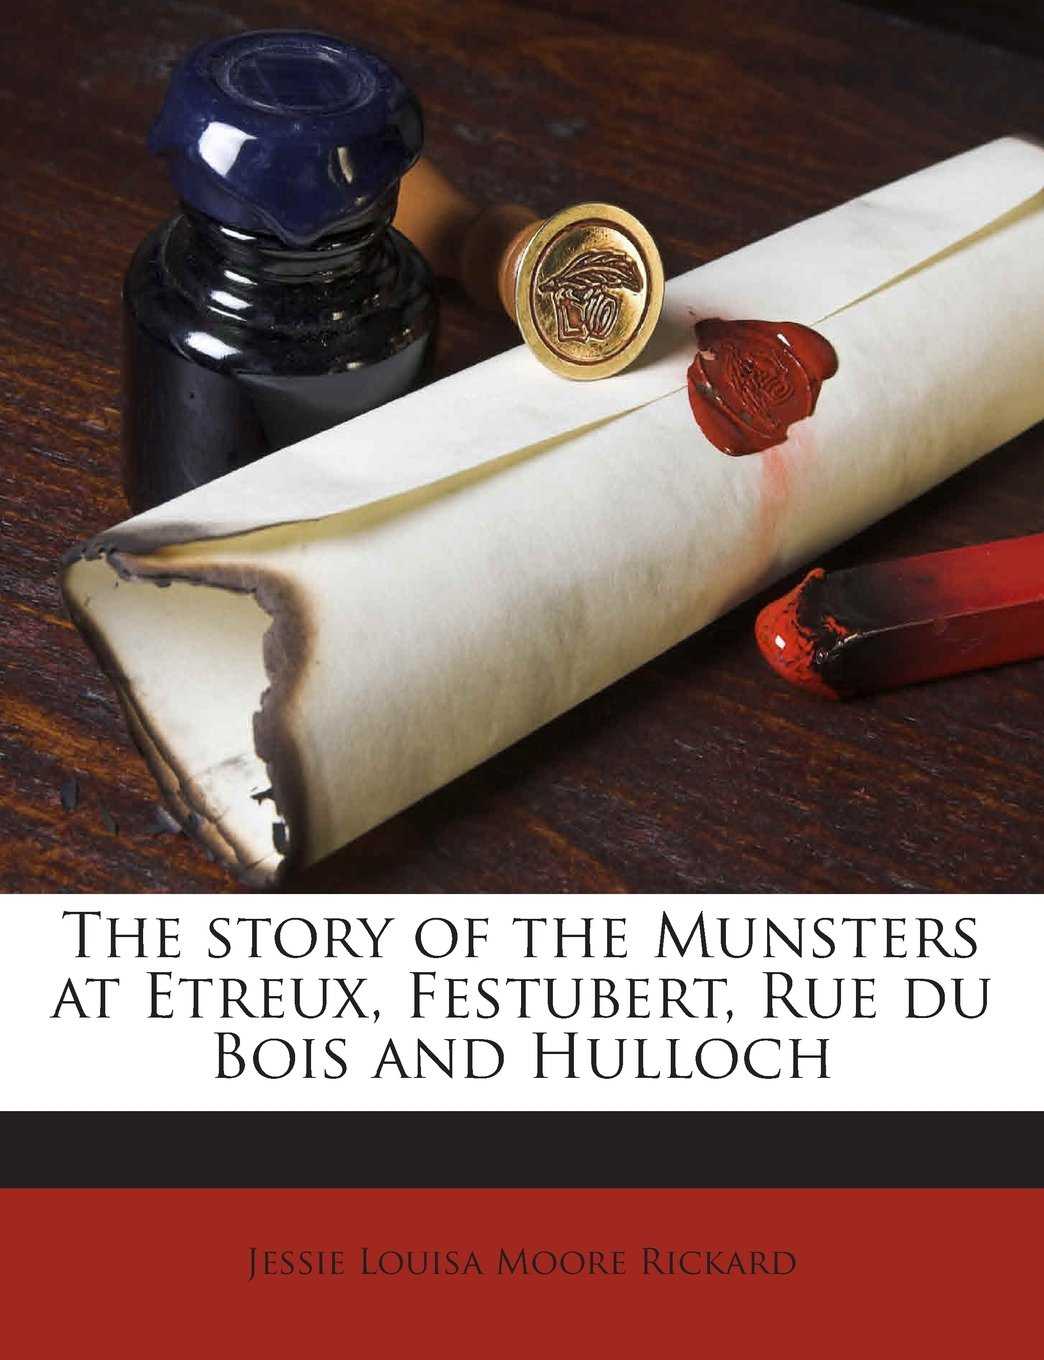 Read Online The story of the Munsters at Etreux, Festubert, Rue du Bois and Hulloch PDF